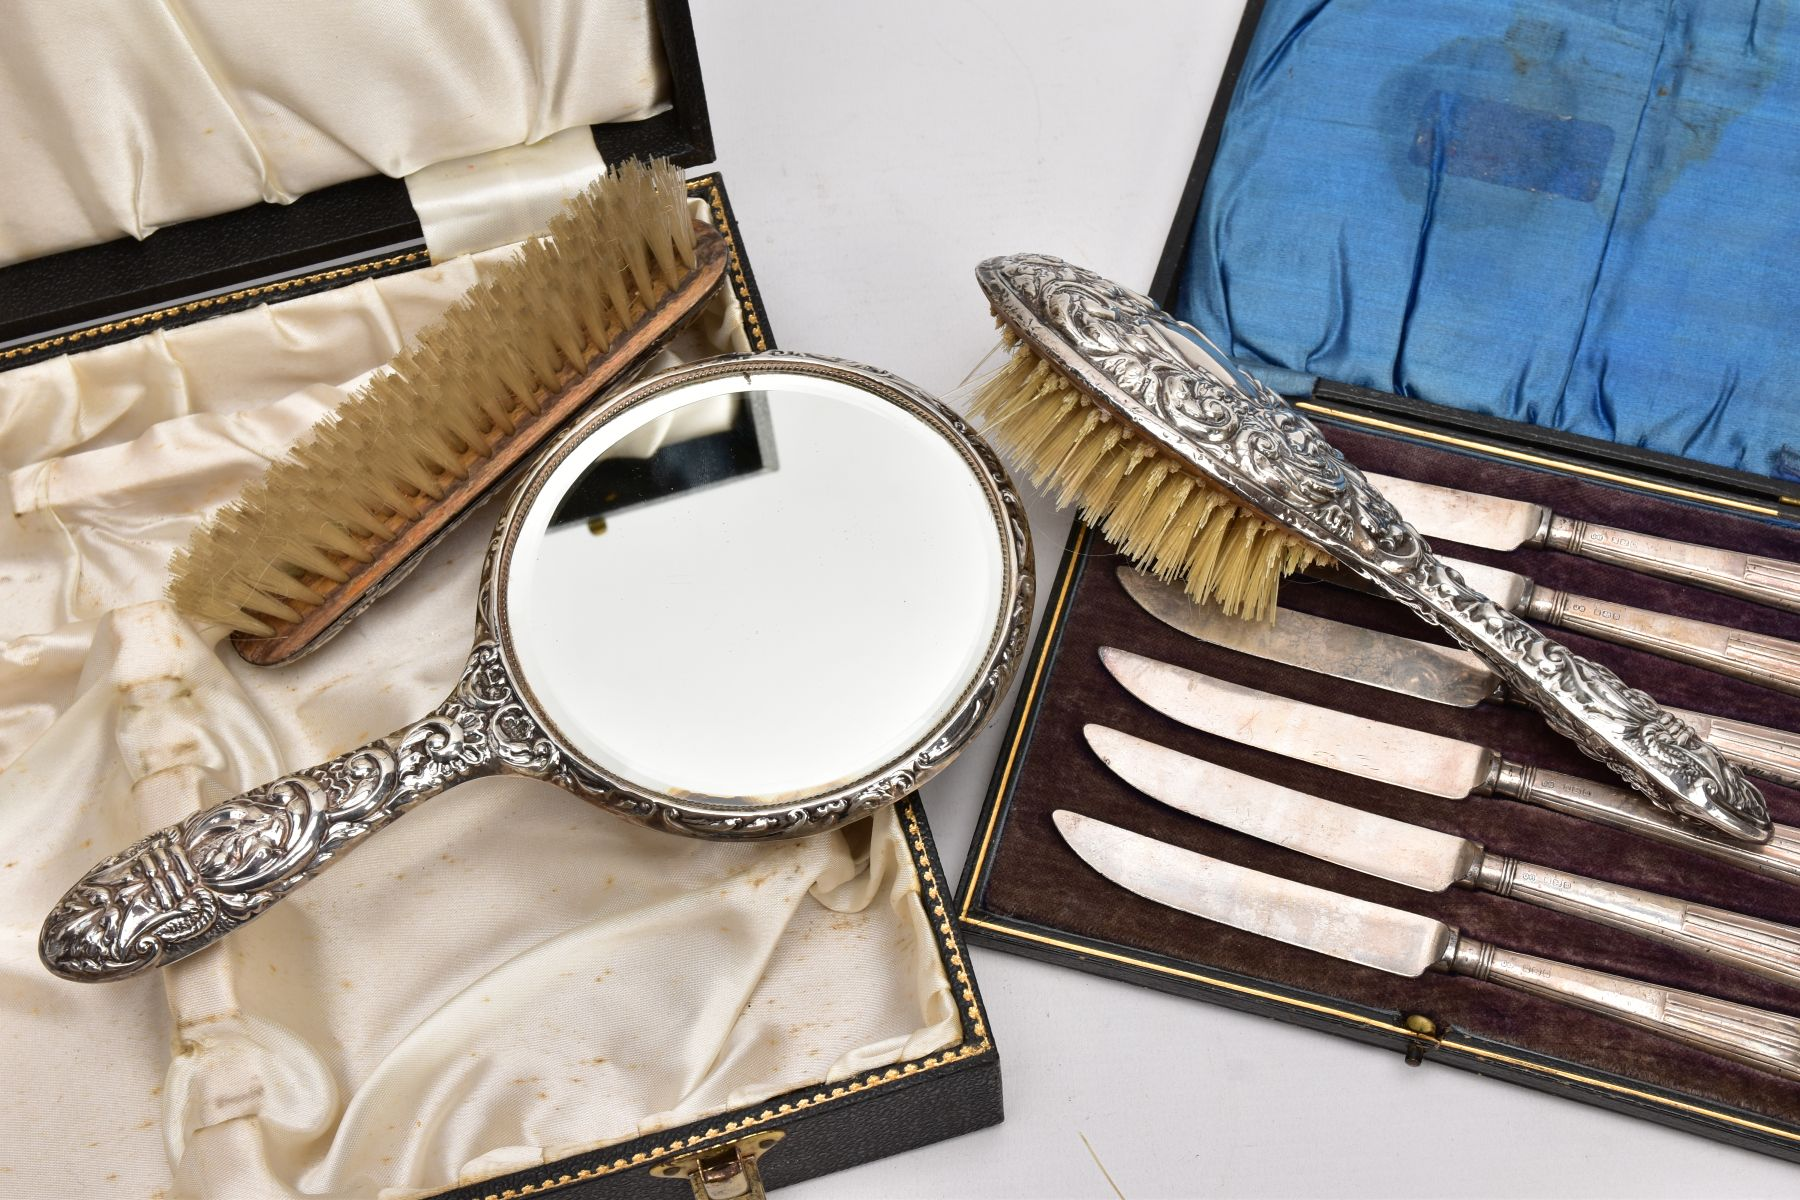 A CASED THREE PIECE SILVER VANITY SET AND A CASED SILVER HANDLED KNIFE SET, the black vanity case - Image 4 of 4